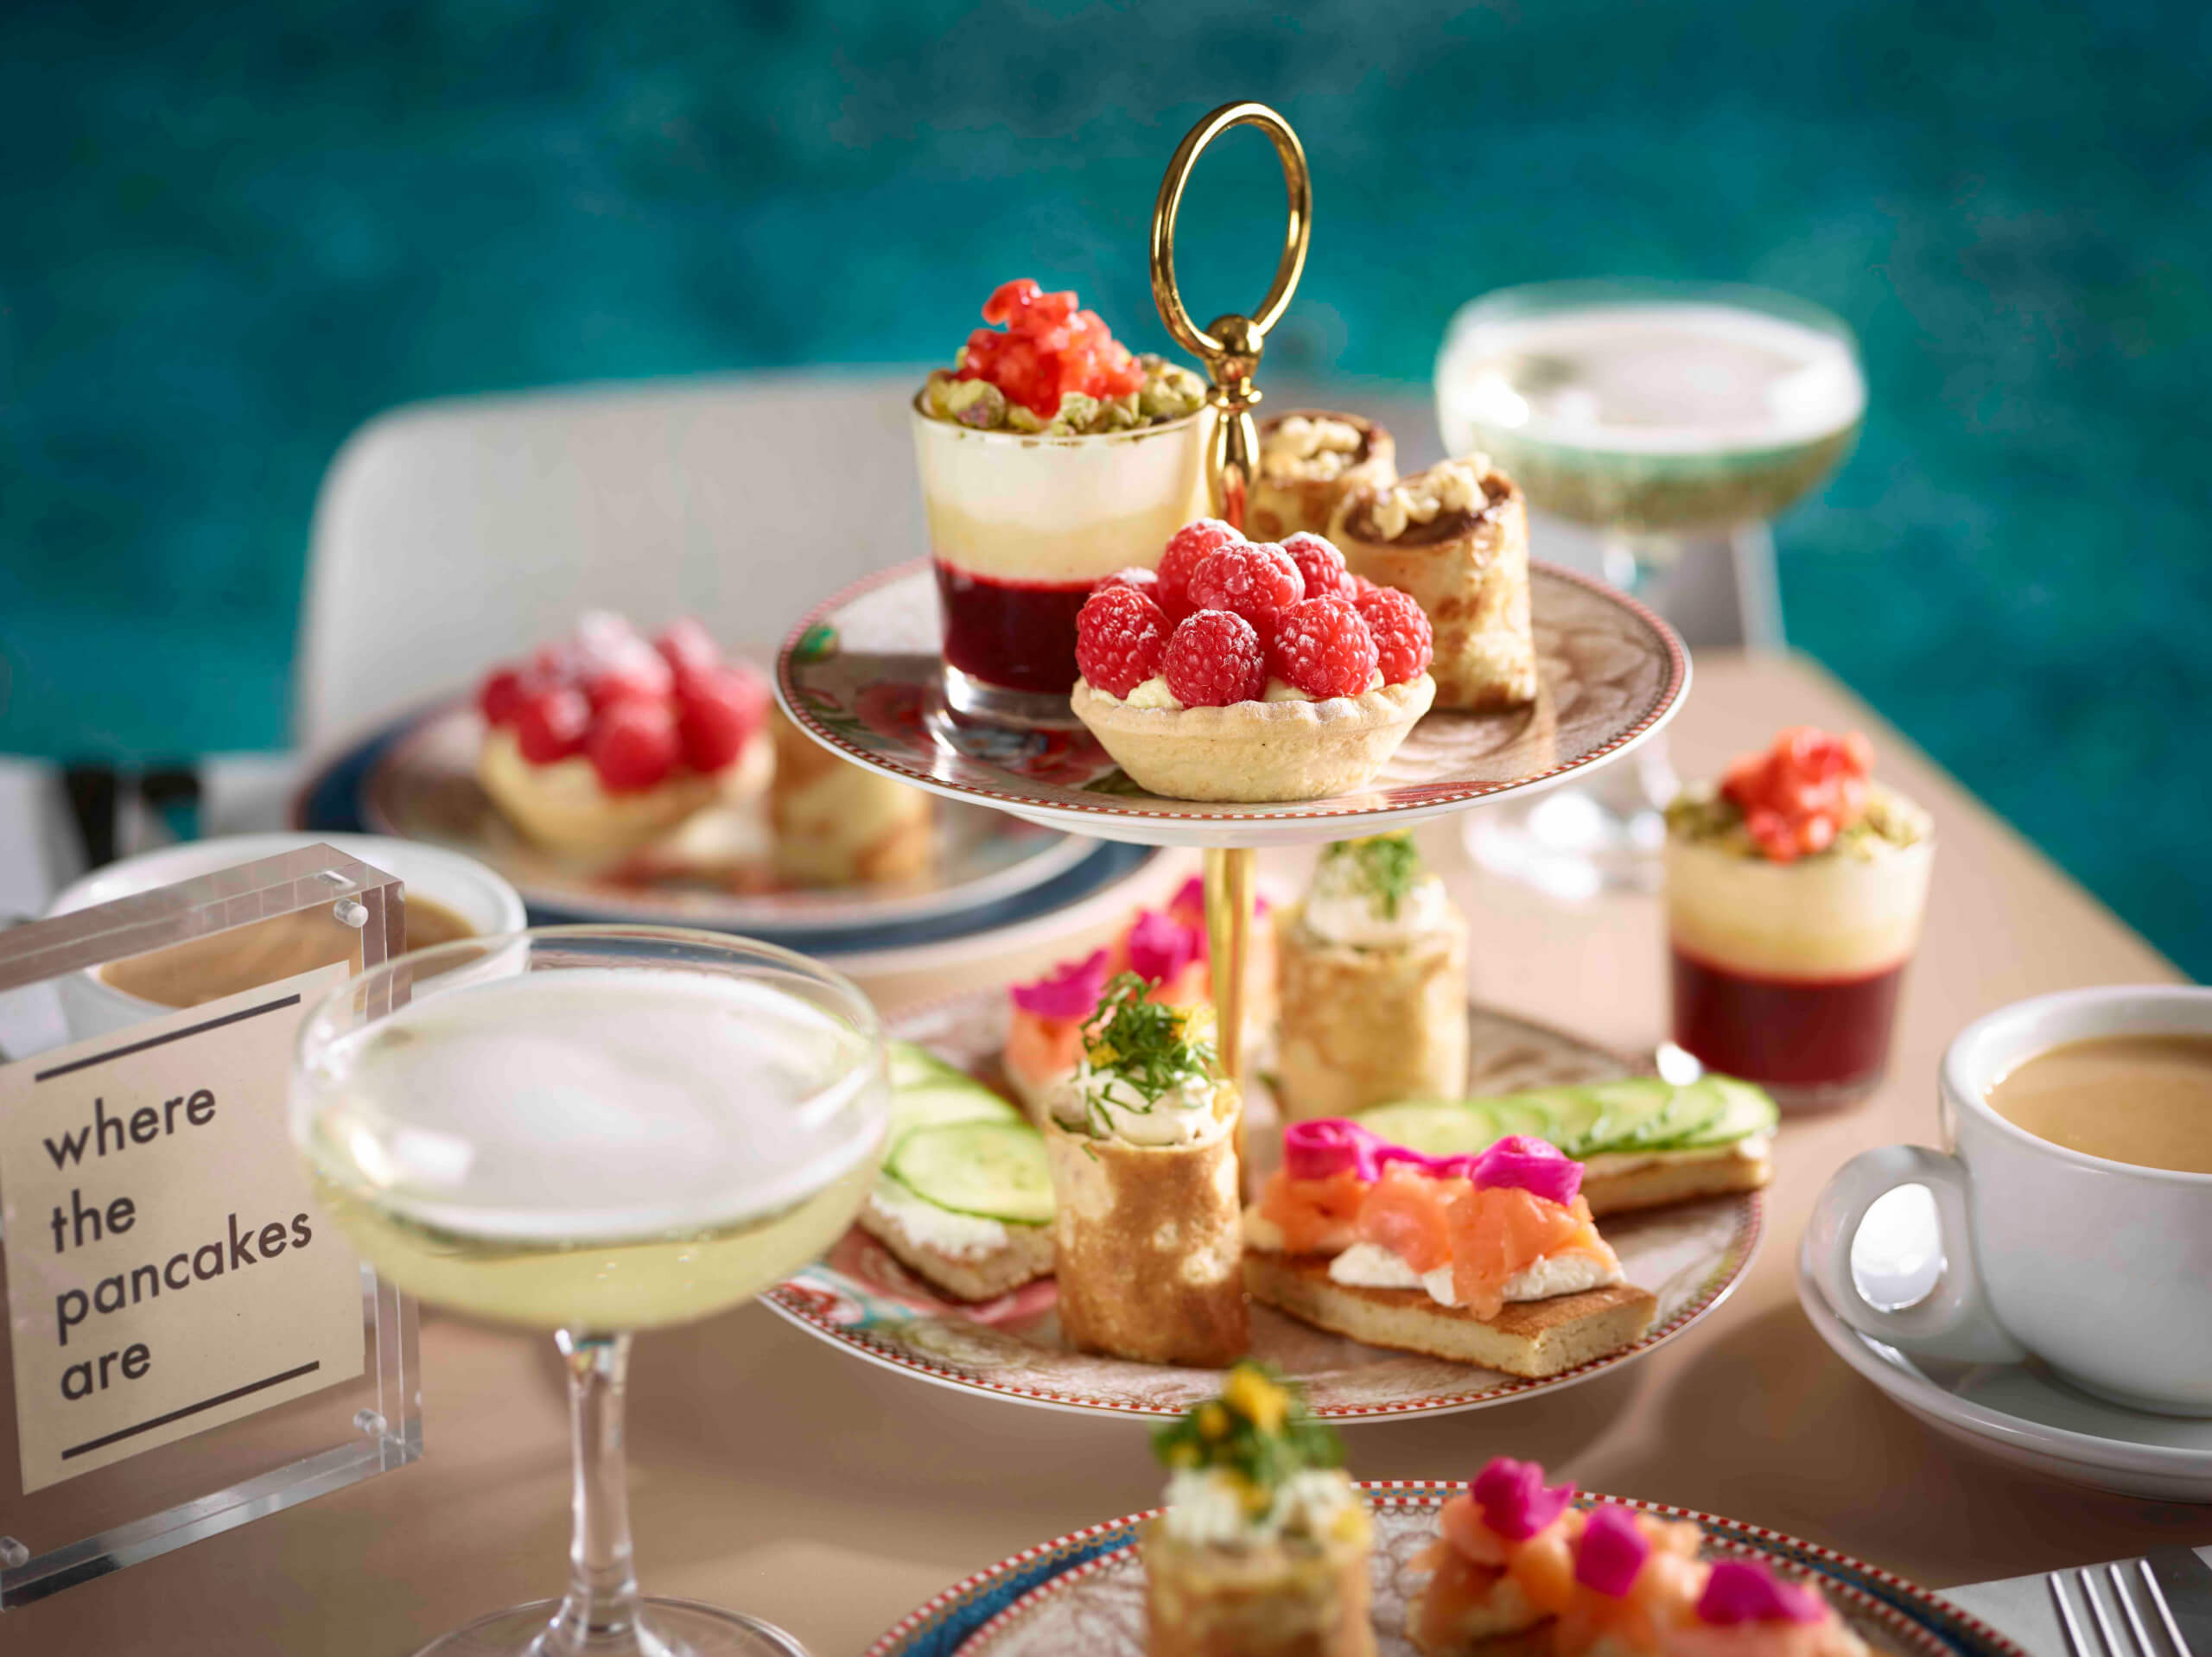 Mother's Day Afternoon Teas in London, best Mother's Day Afternoon Teas in London, afternoon teas in London, mother's day in london, mother's day in london 2017, mother's day 2017, afternoon teas for mums